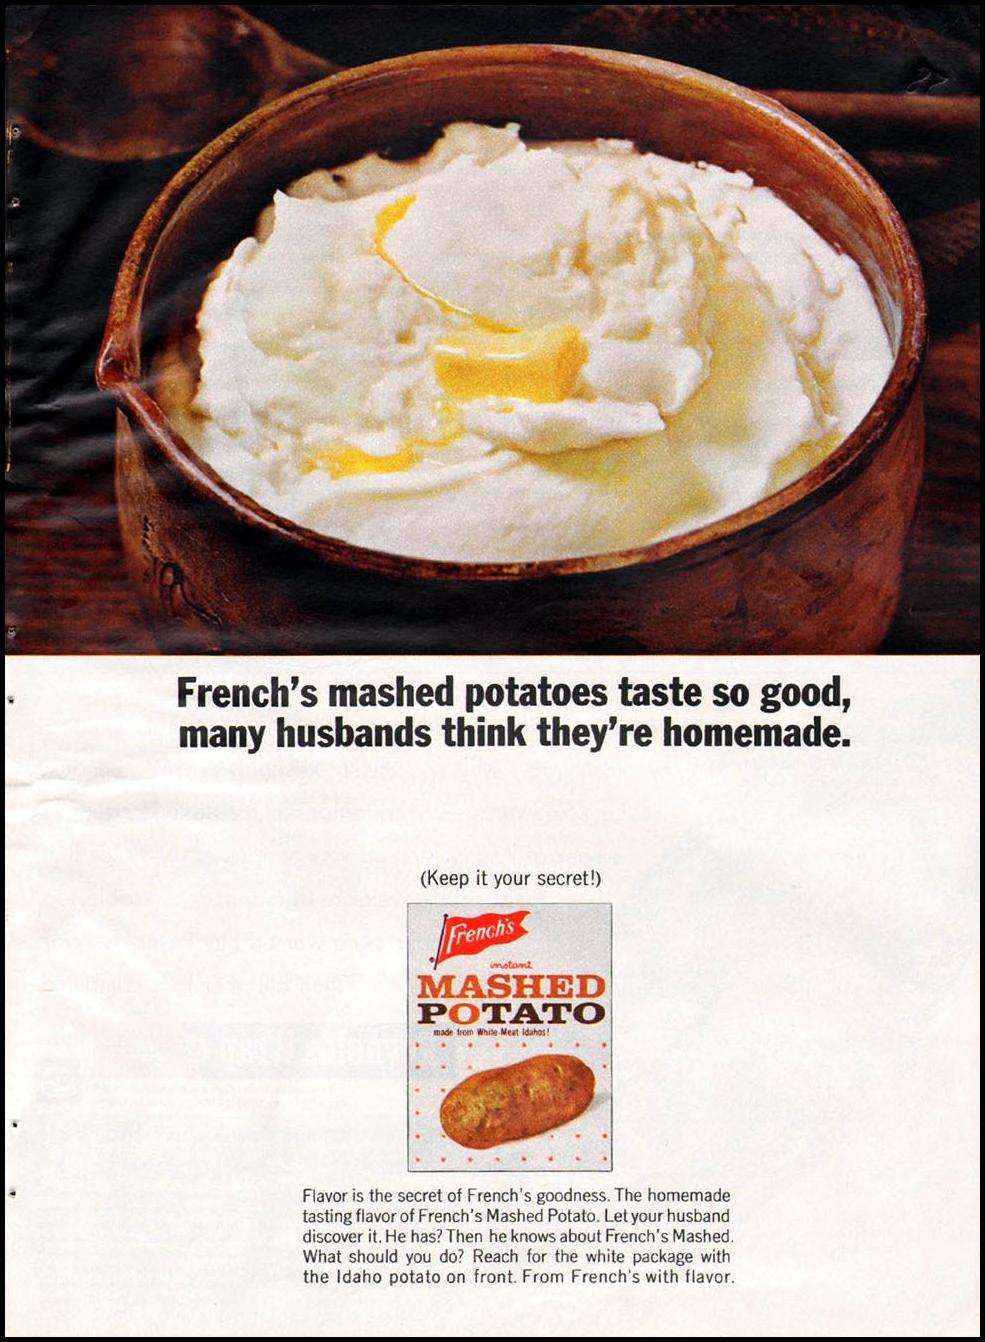 FRENCH'S INSTANT MASHED POTATO GOOD HOUSEKEEPING 10/01/1965 p. 57